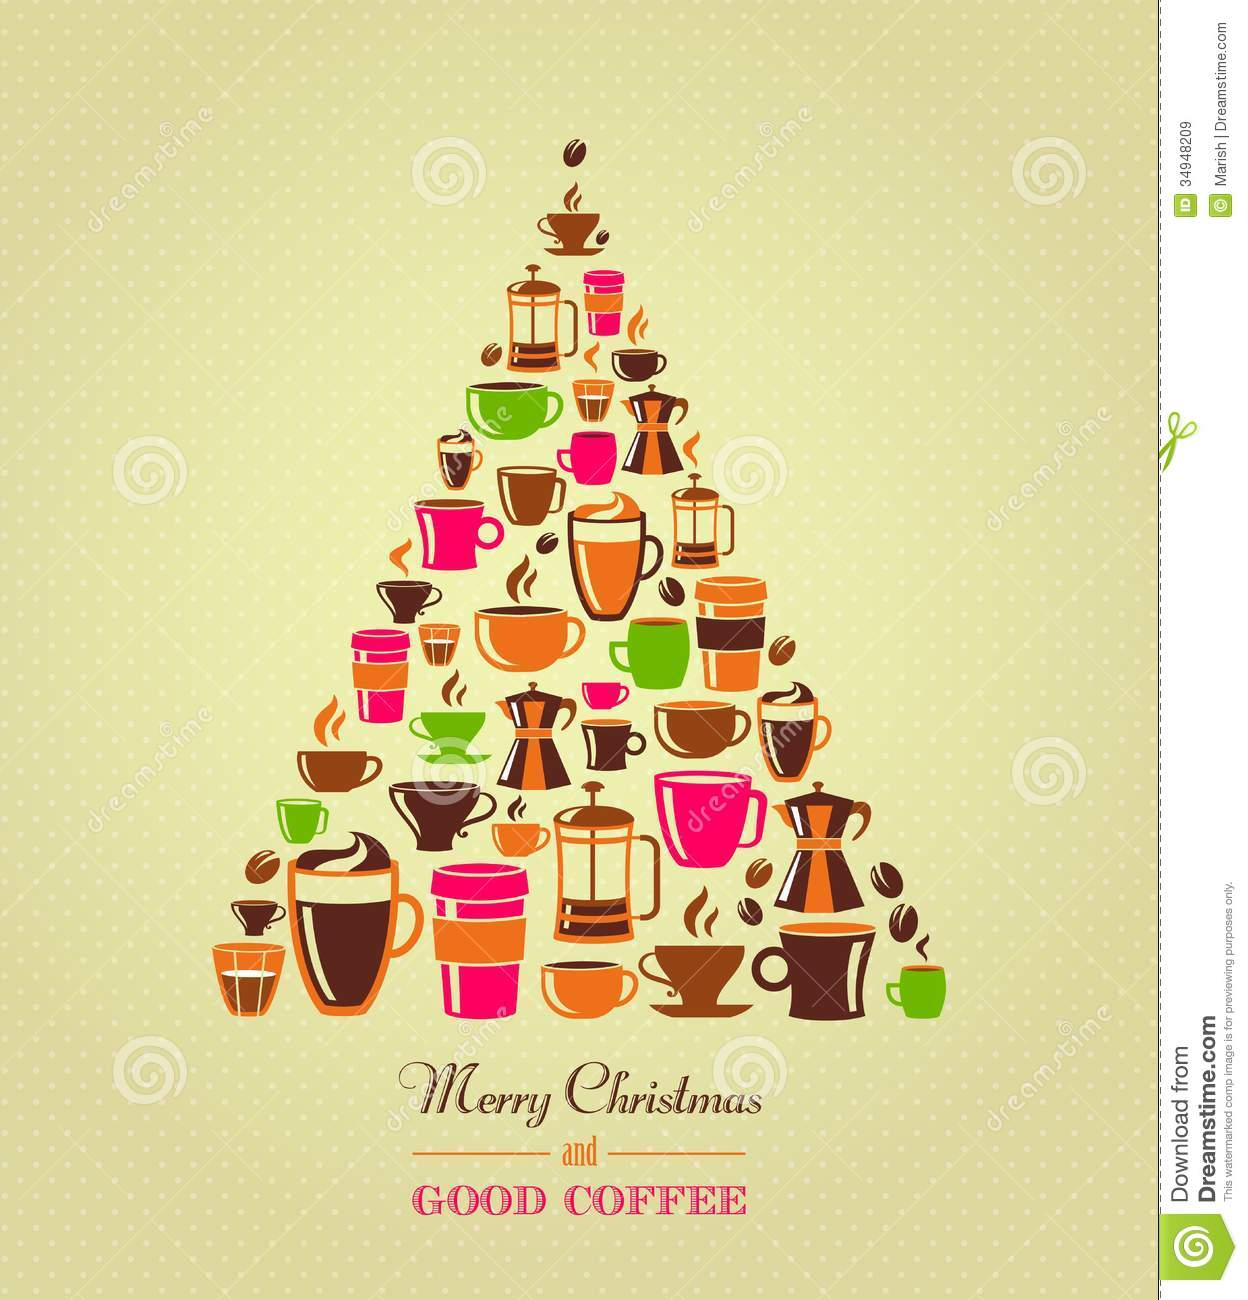 Vintage Christmas Tree Coffee Icons Royalty Free Stock Images   Image